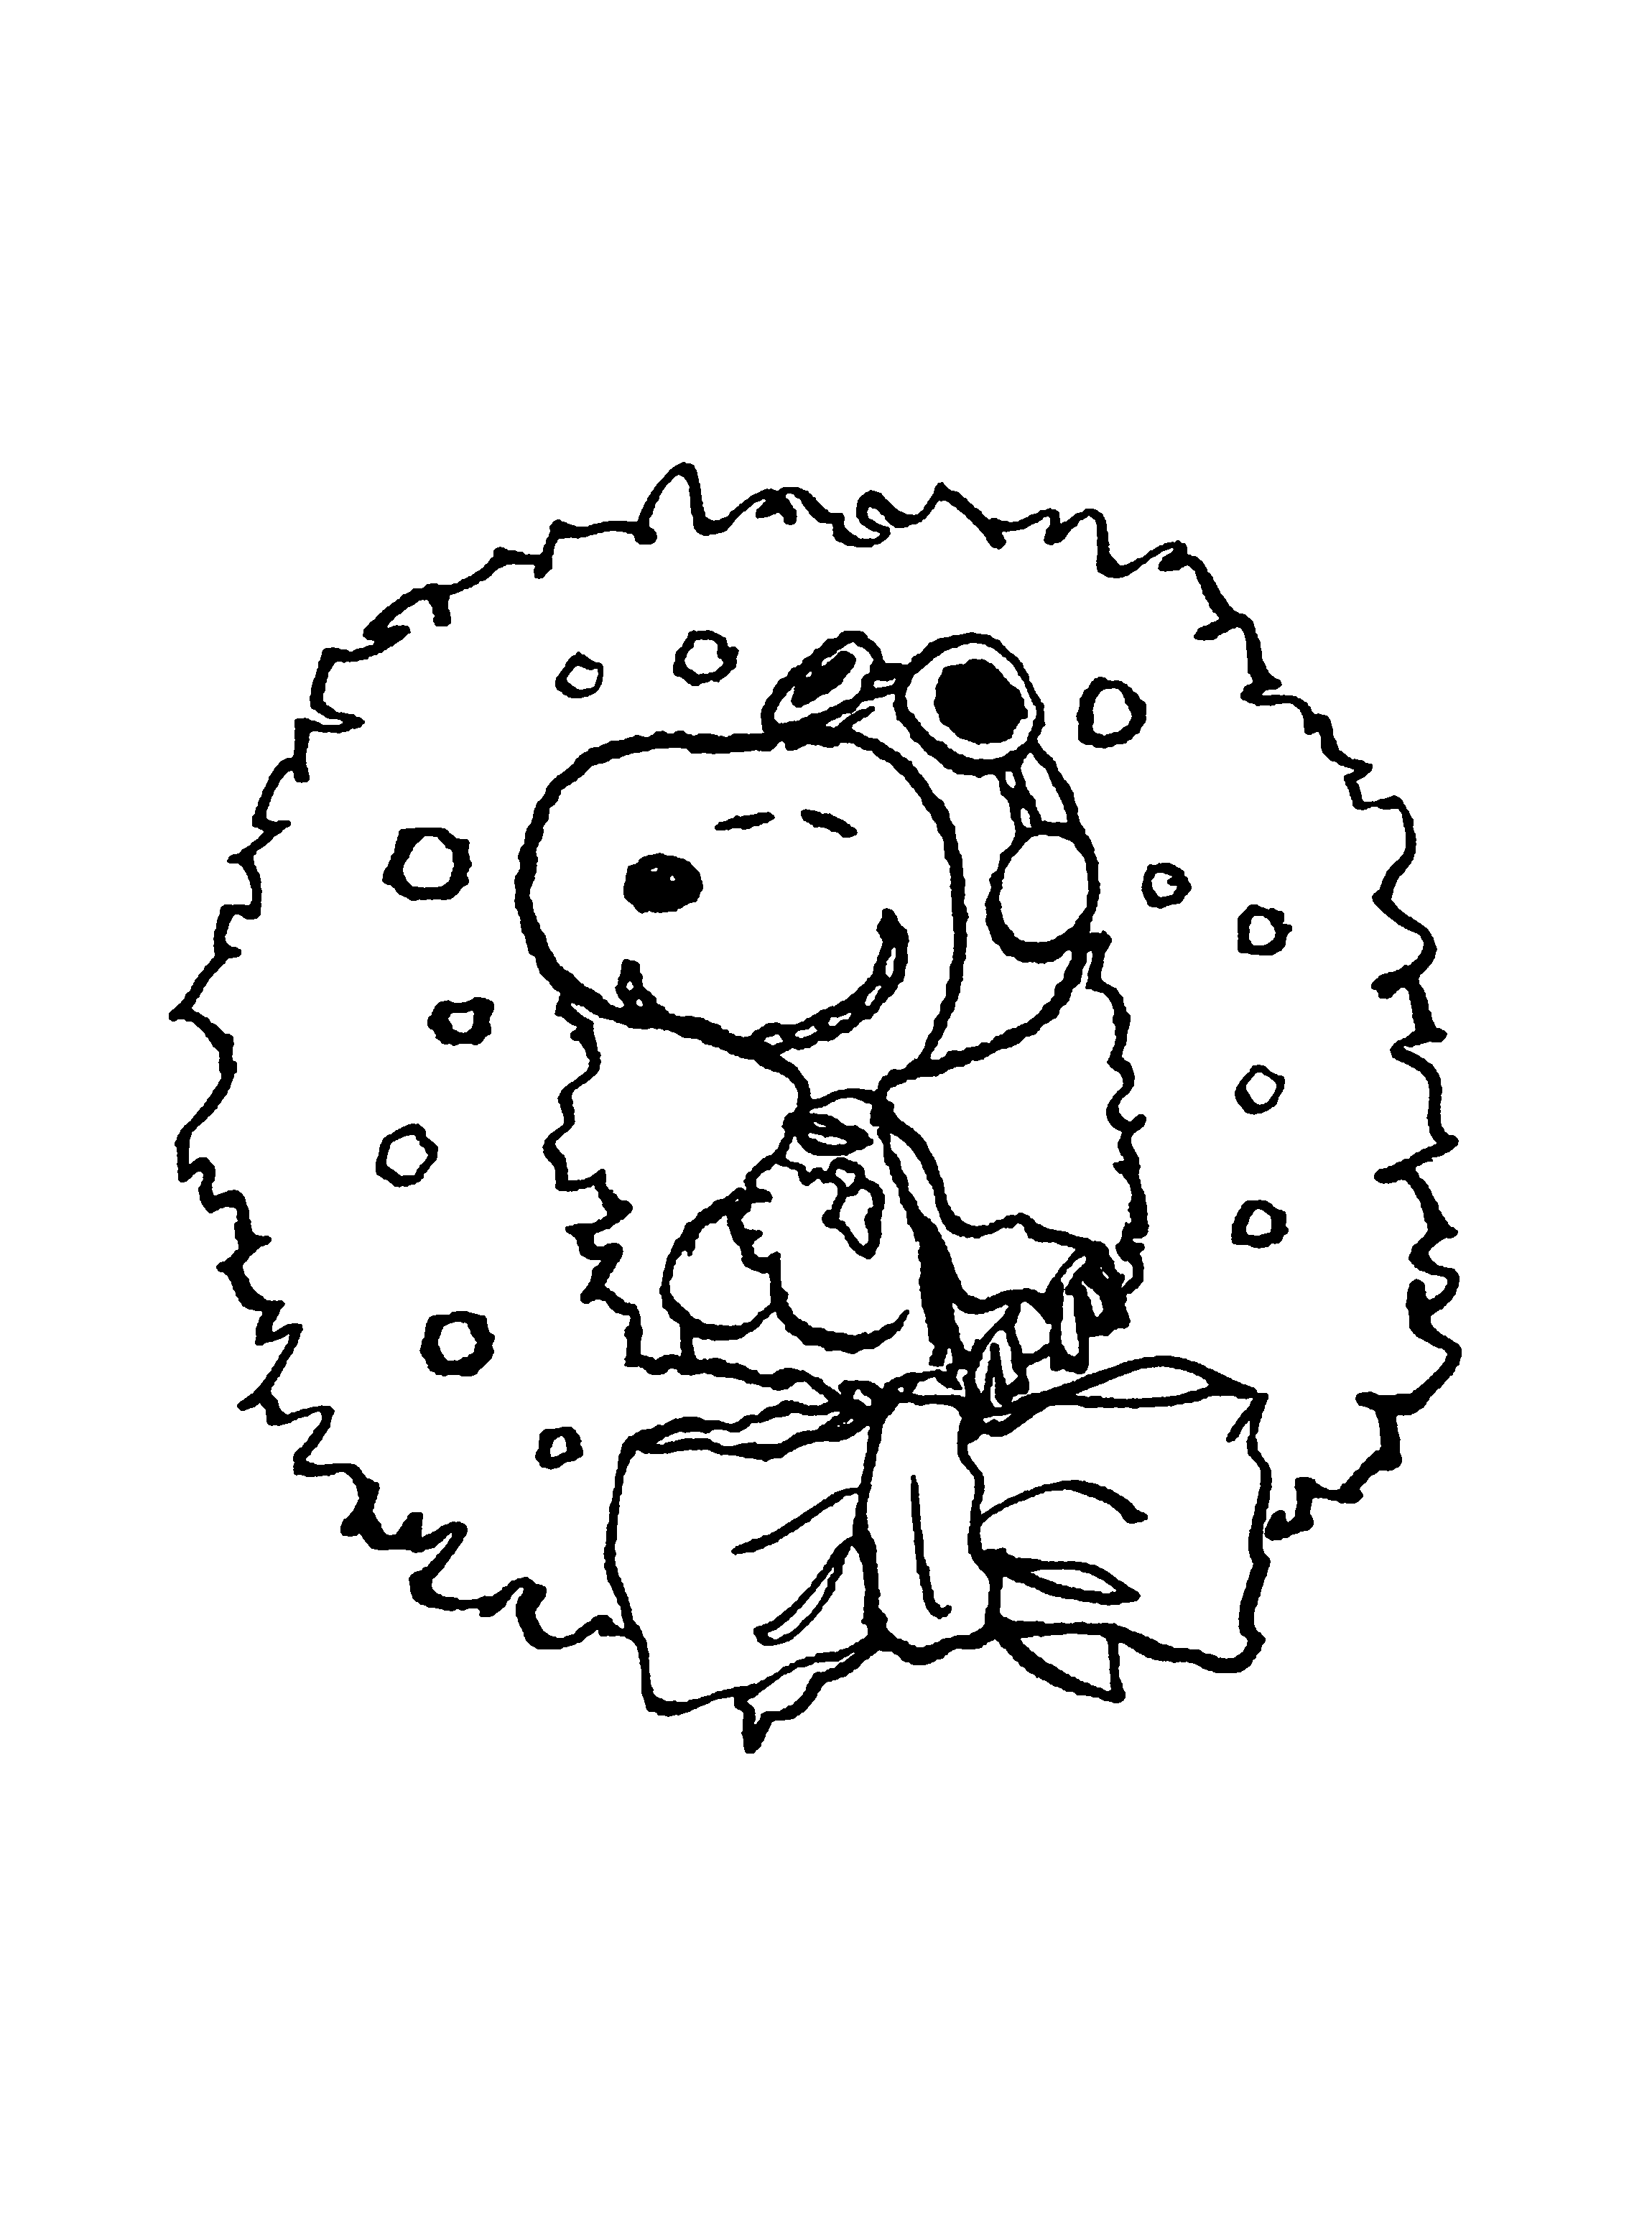 Red Baron Snoopy In Christmas Wreath Coloring